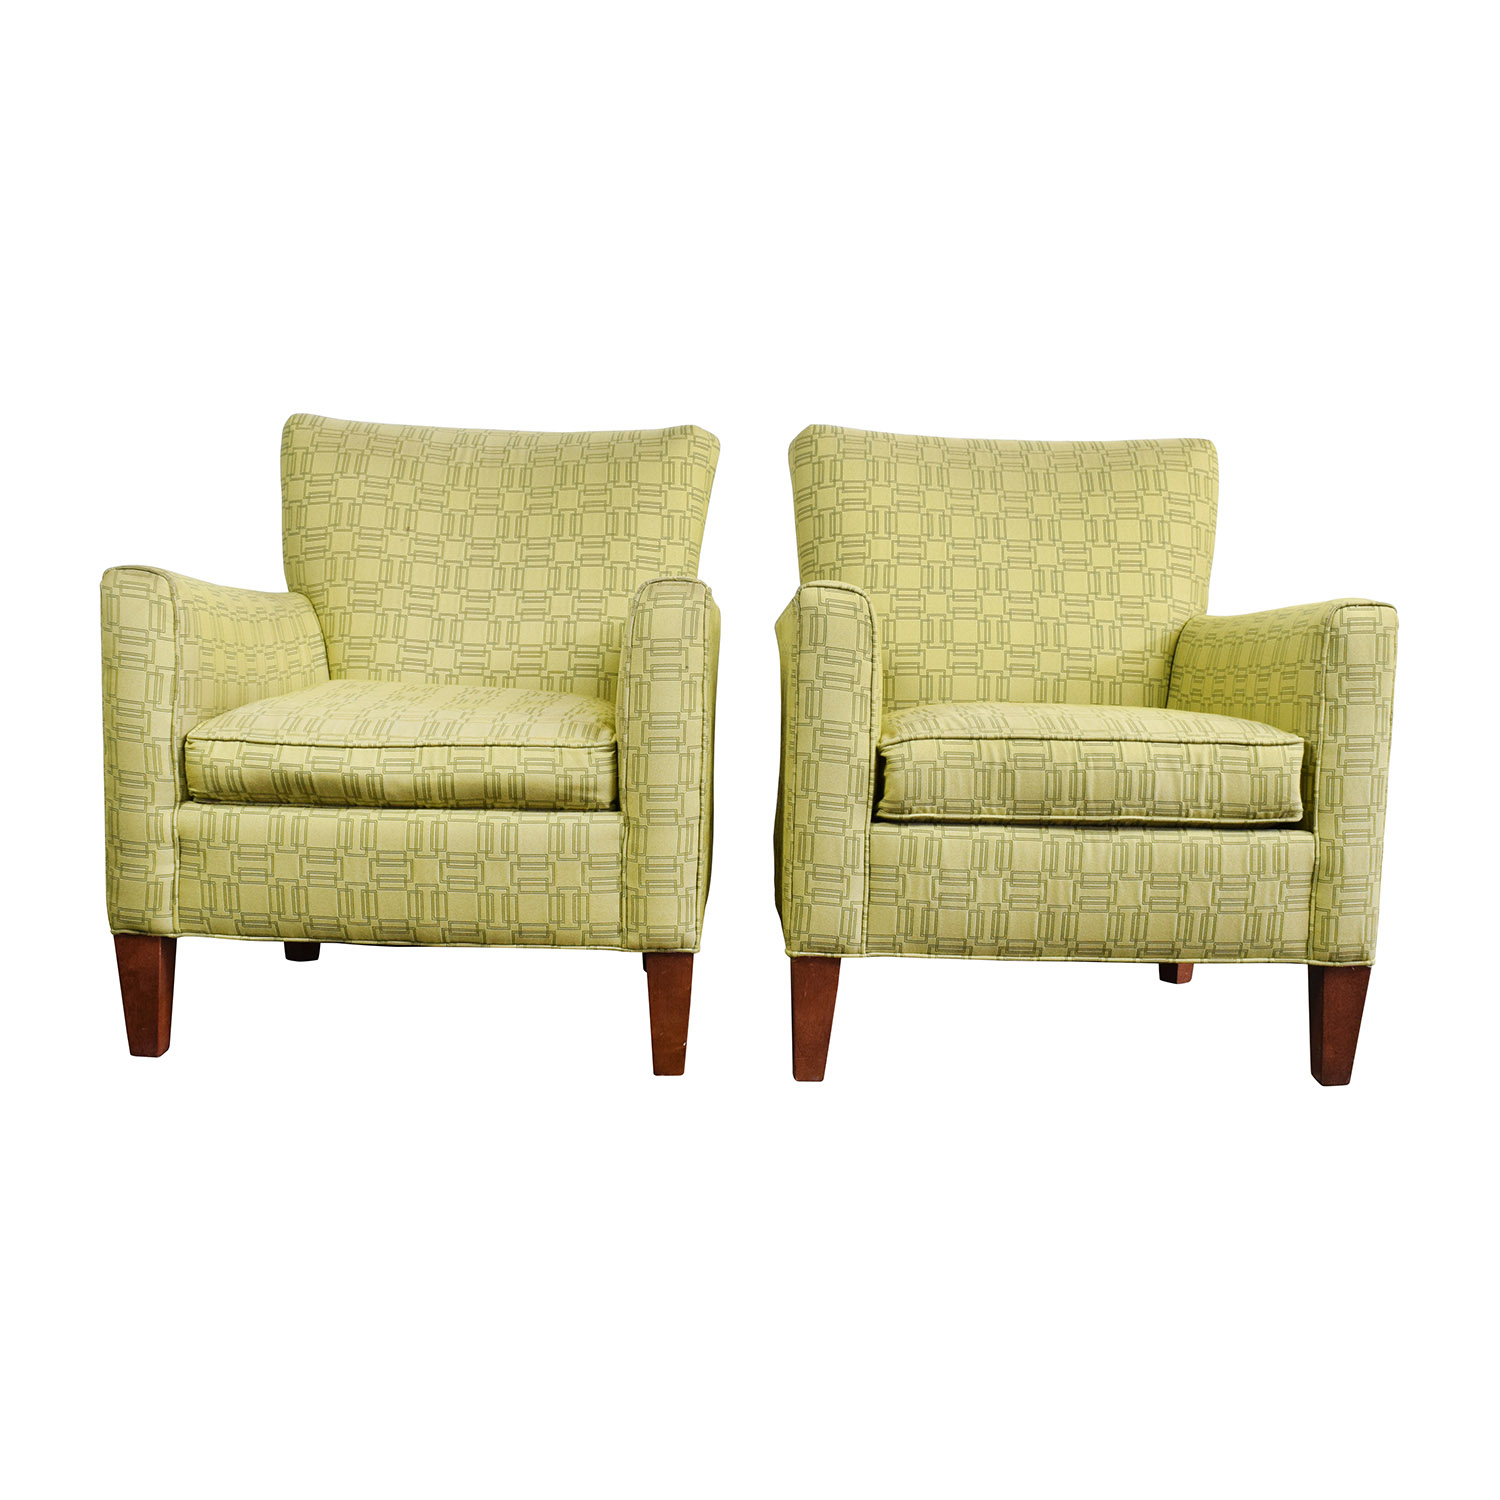 Buy Ethan Allen Green Upholstered Accent Chairs Ethan Allen ...